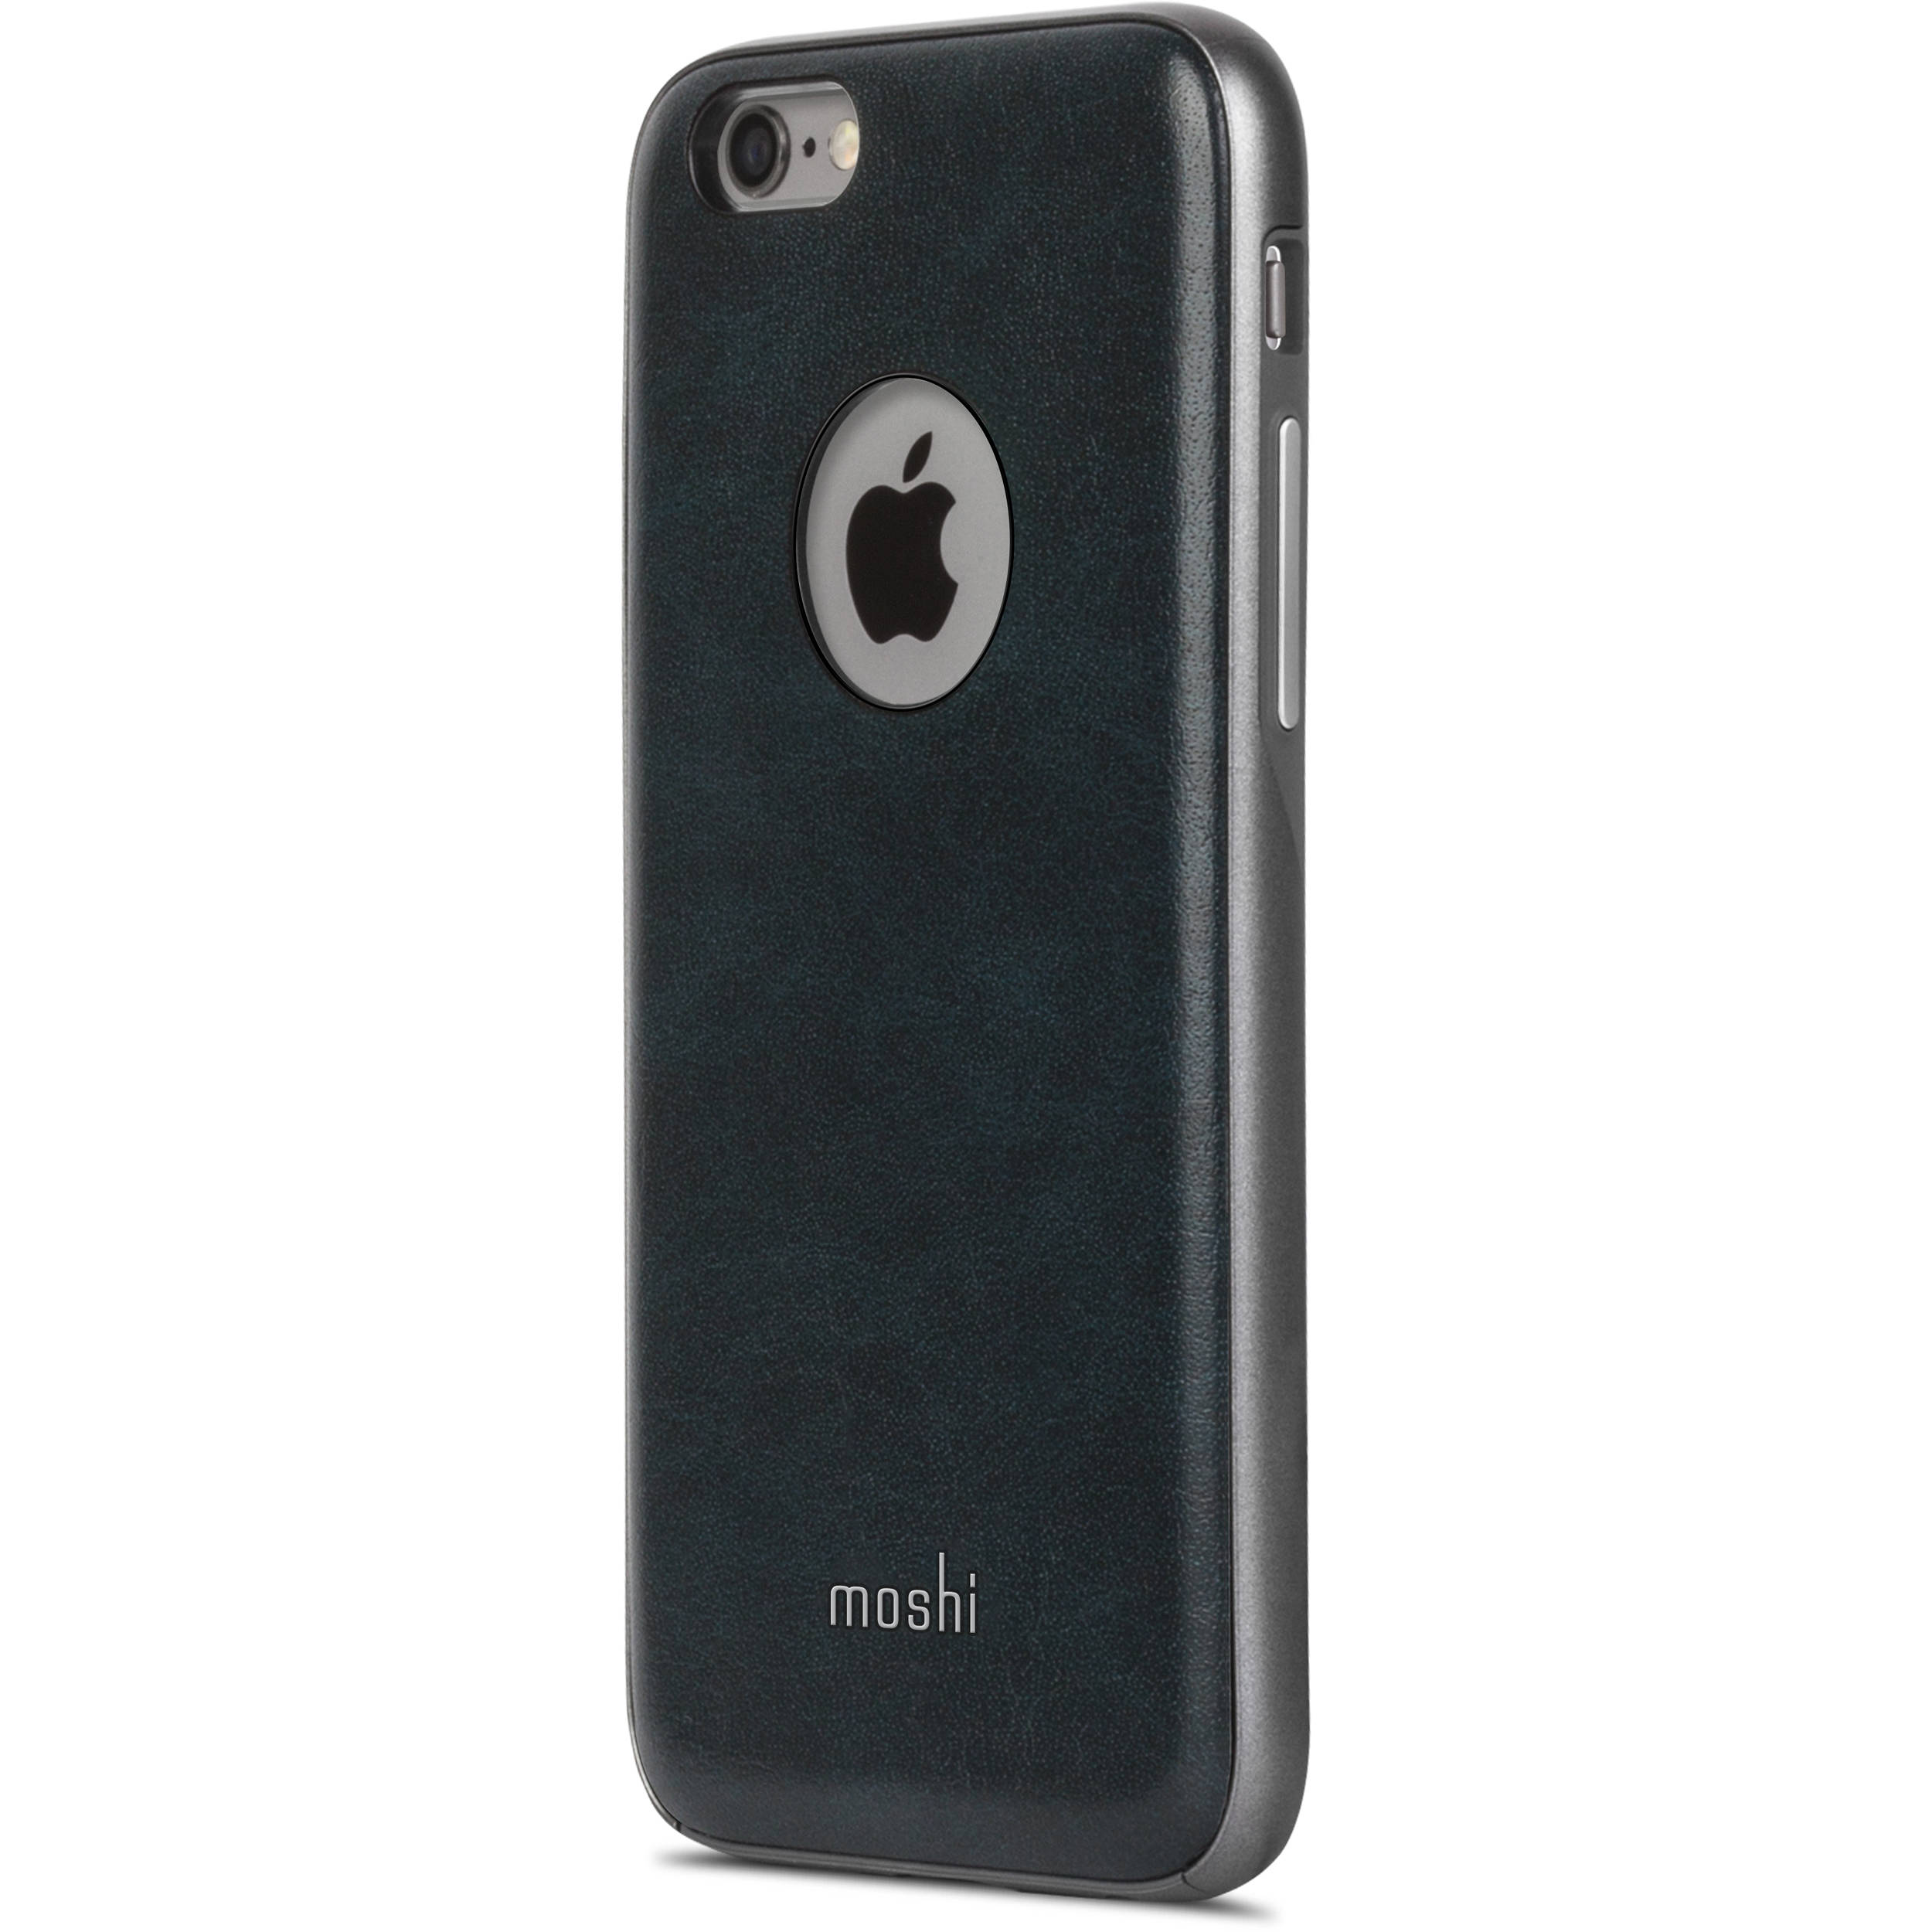 moshi iphone case moshi iglaze napa for iphone 6 6s midnight blue 7367